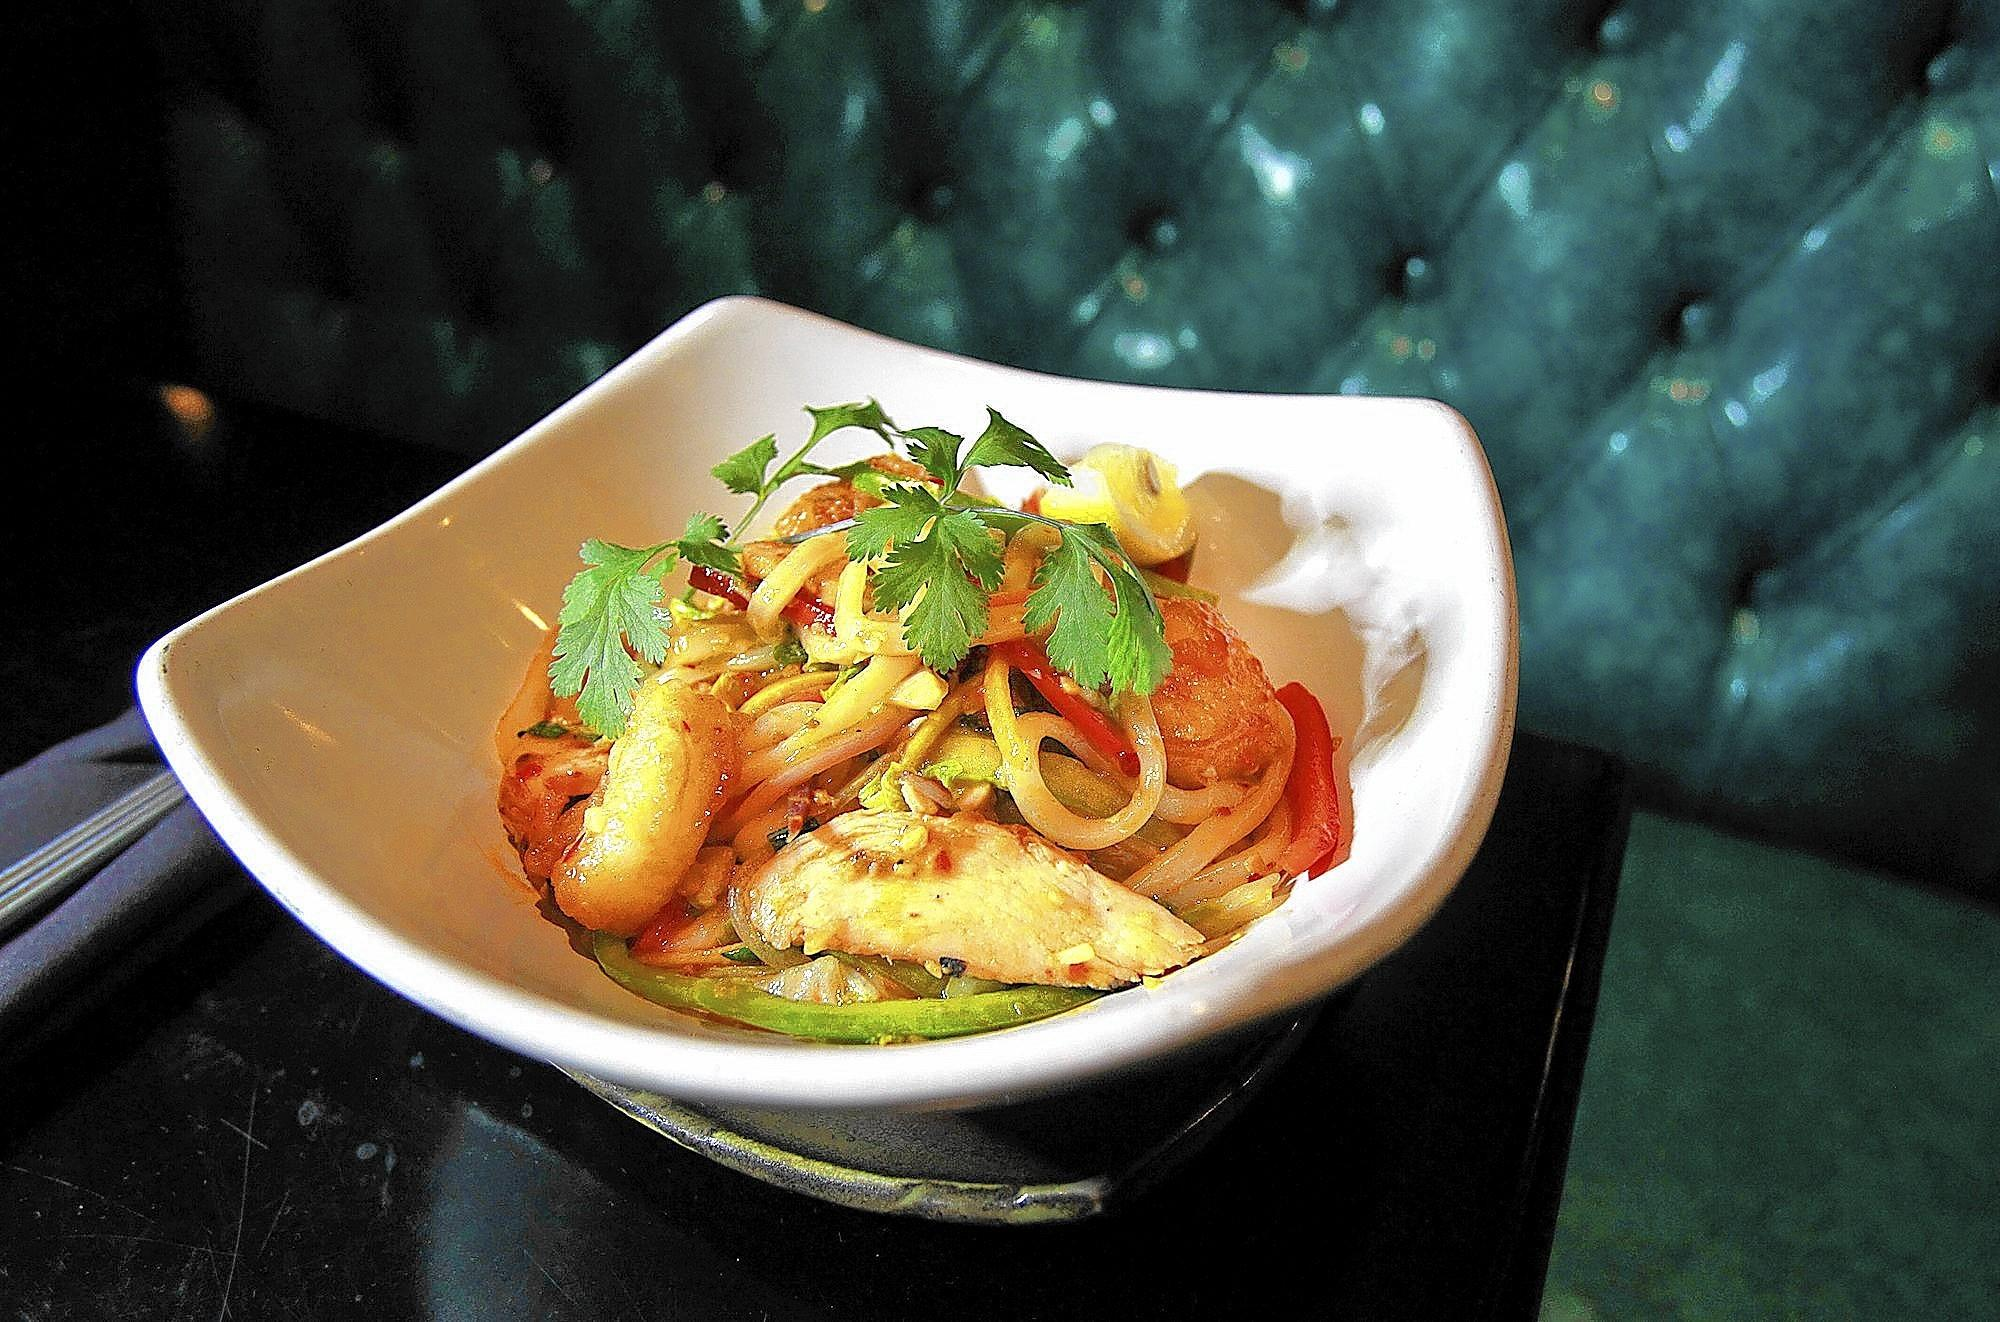 The Bangkok spicy udon noodles, made by Starfish Laguna Beach chef Marco Romero.